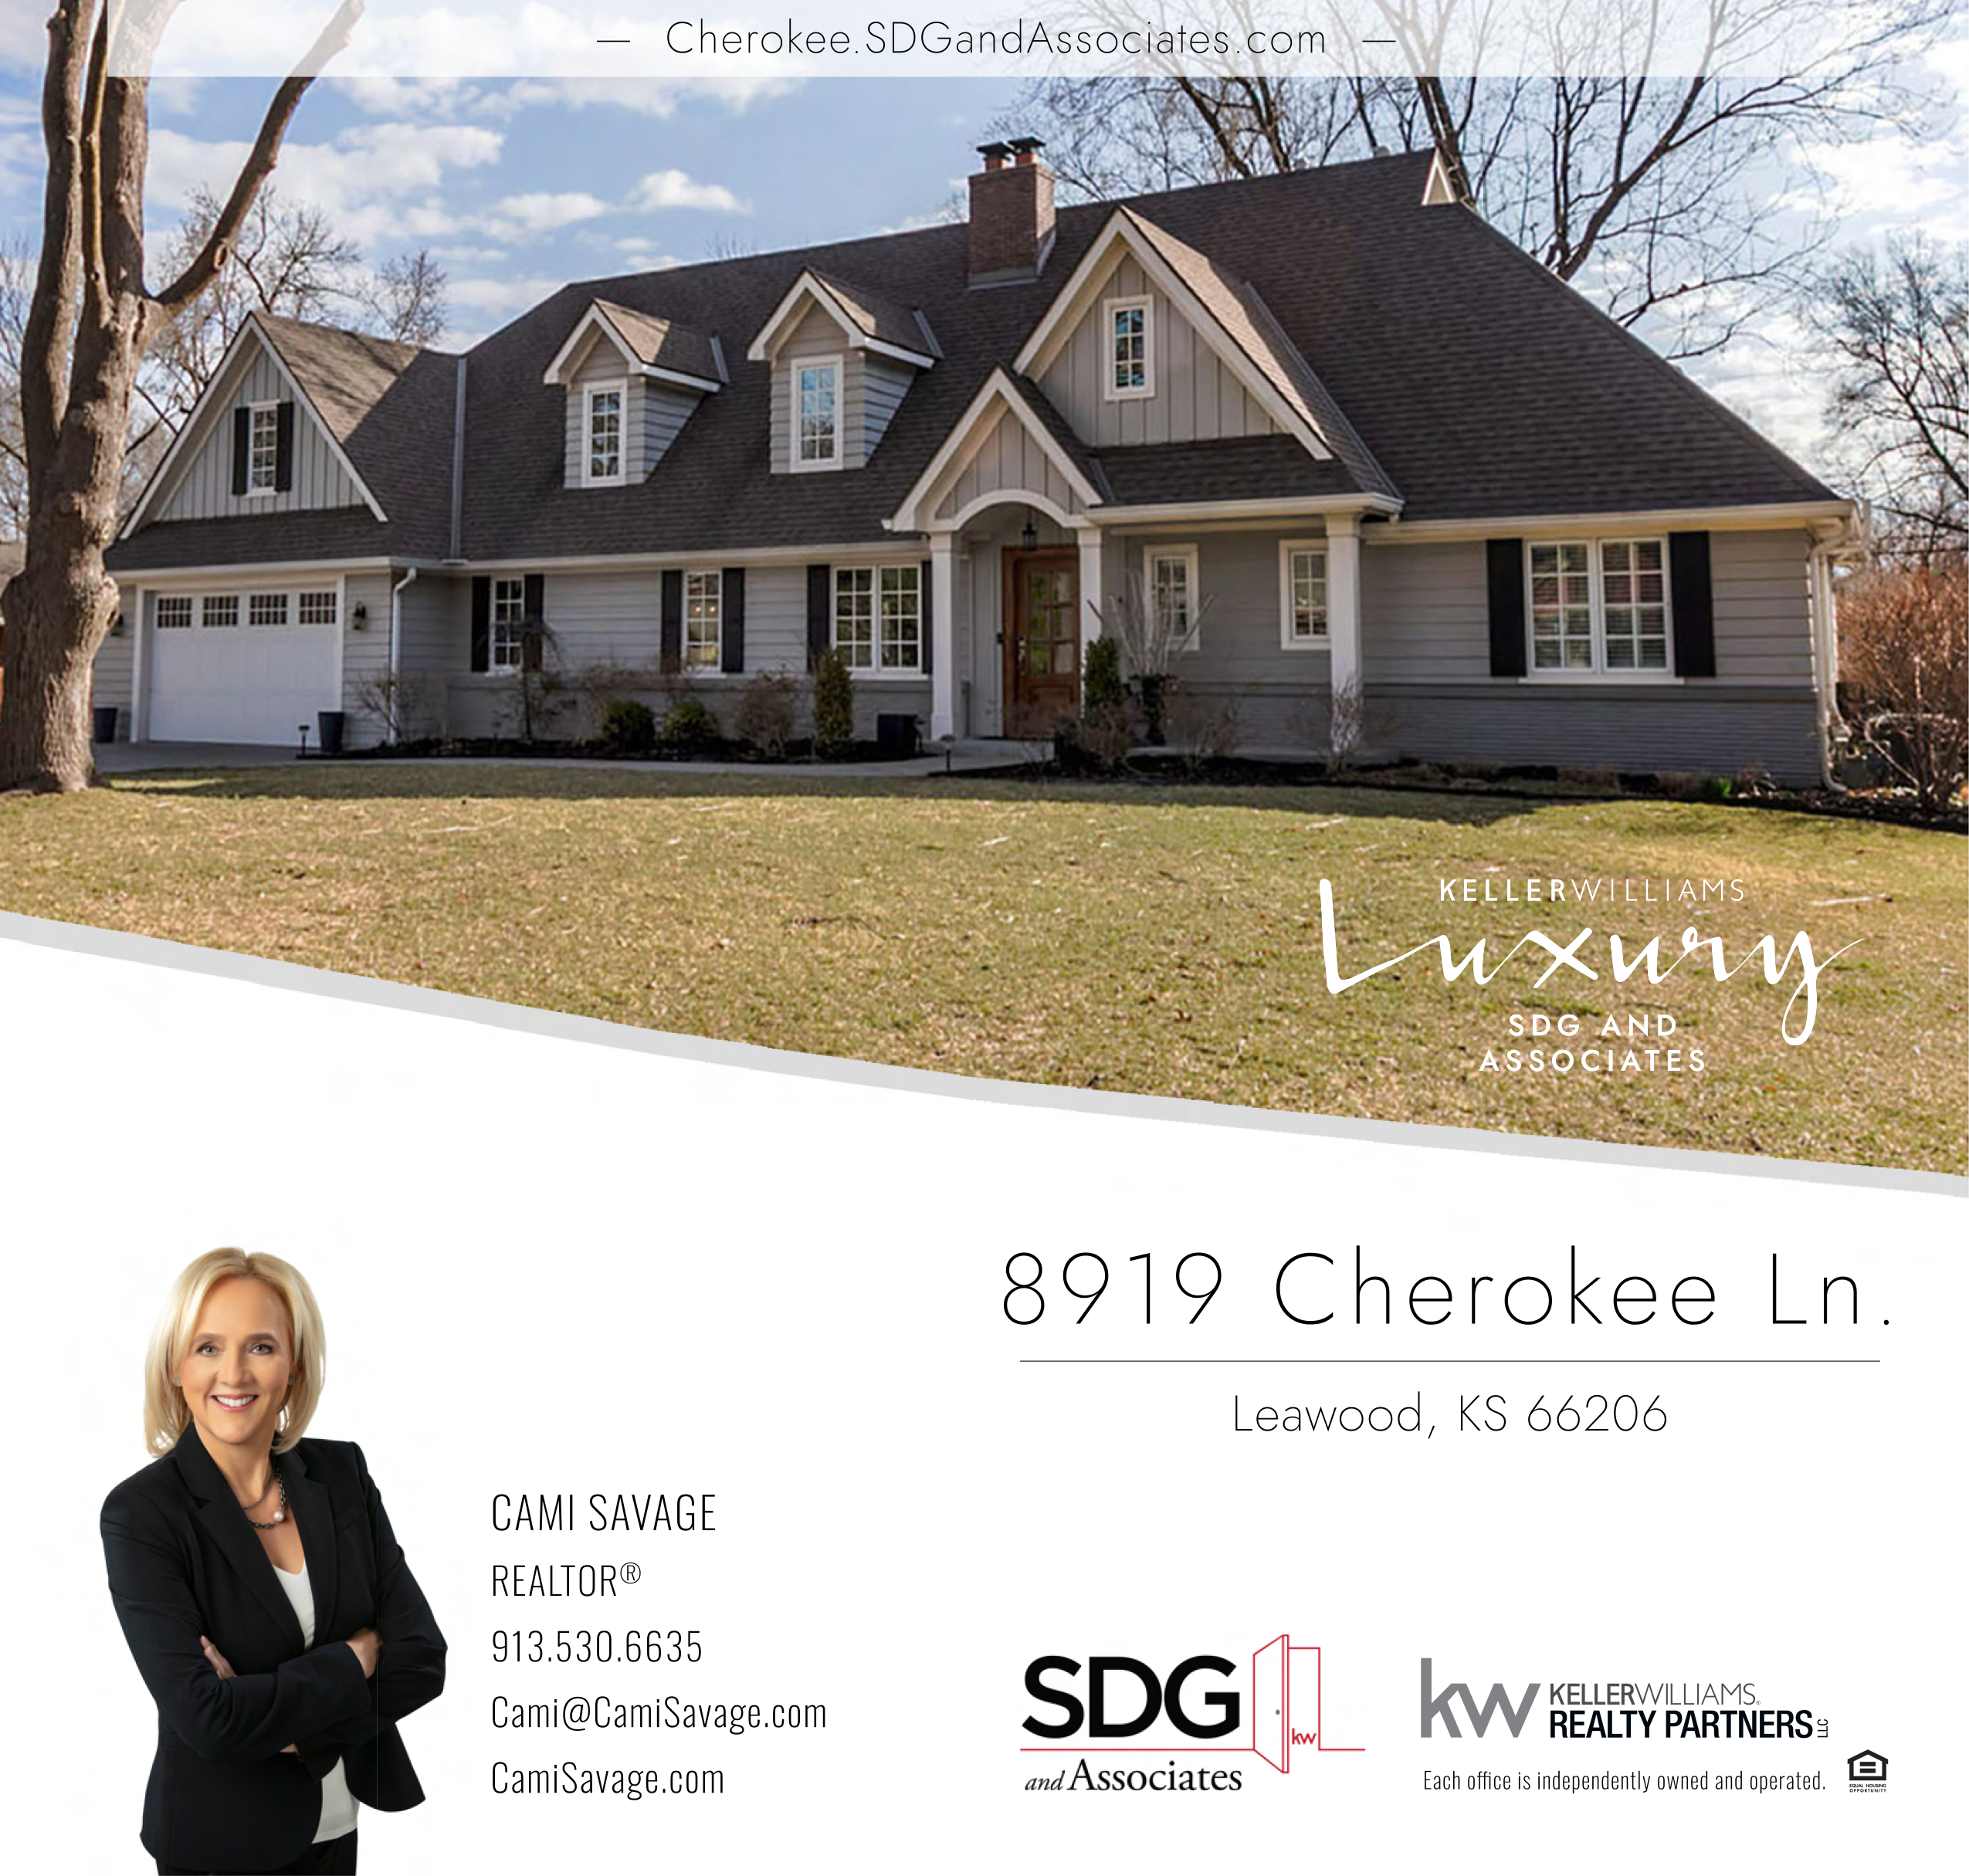 JUST LISTED! Remodeled Old Leawood Gem Perfectly Marries NEW with TRADITIONAL!